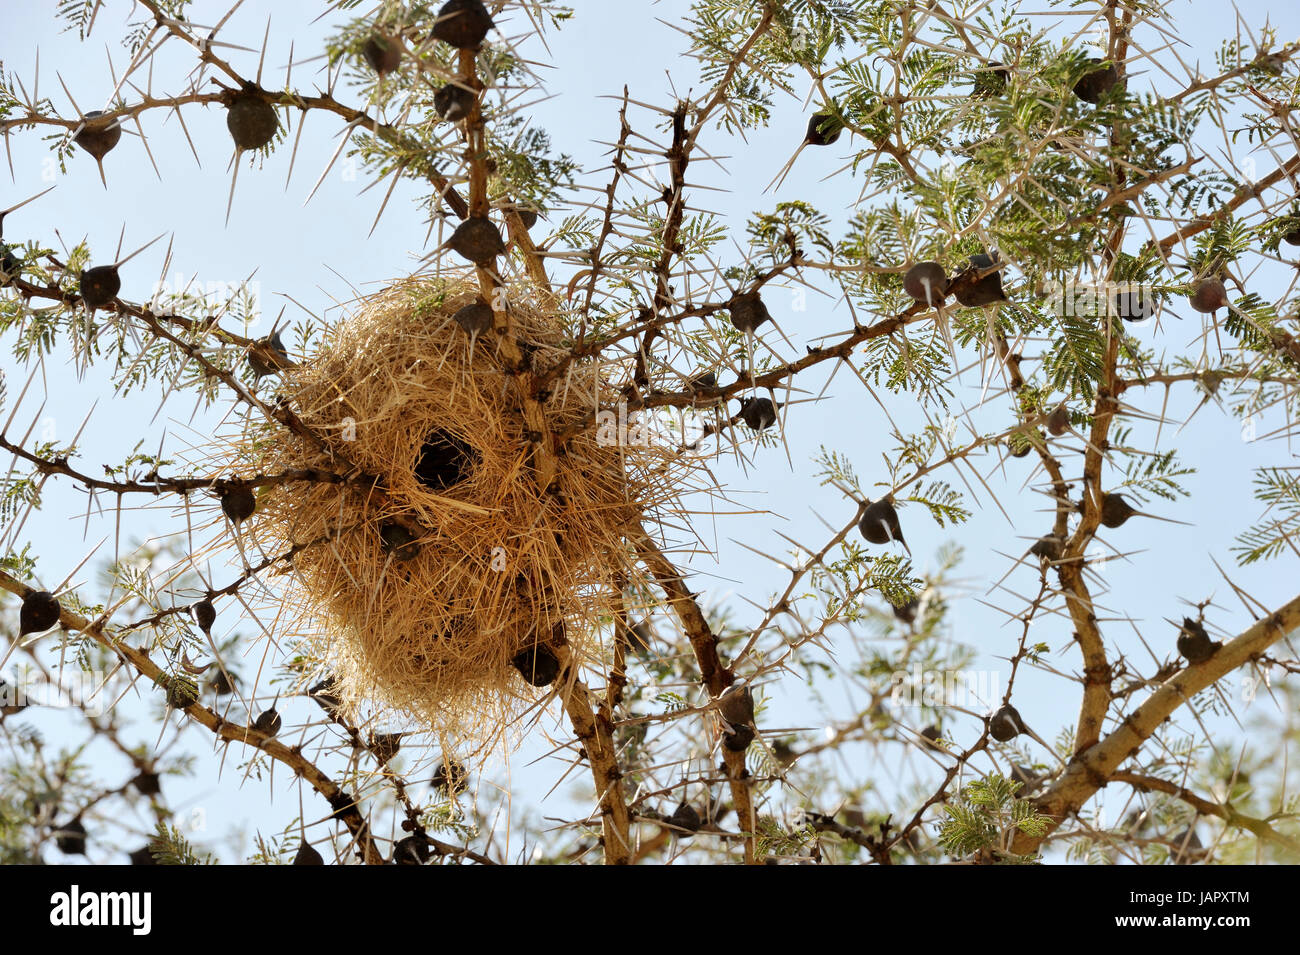 Whistling thorn acacia (Acacia drepanolobium) close up with wevers birdnest, typical for the western corridor and - Stock Image